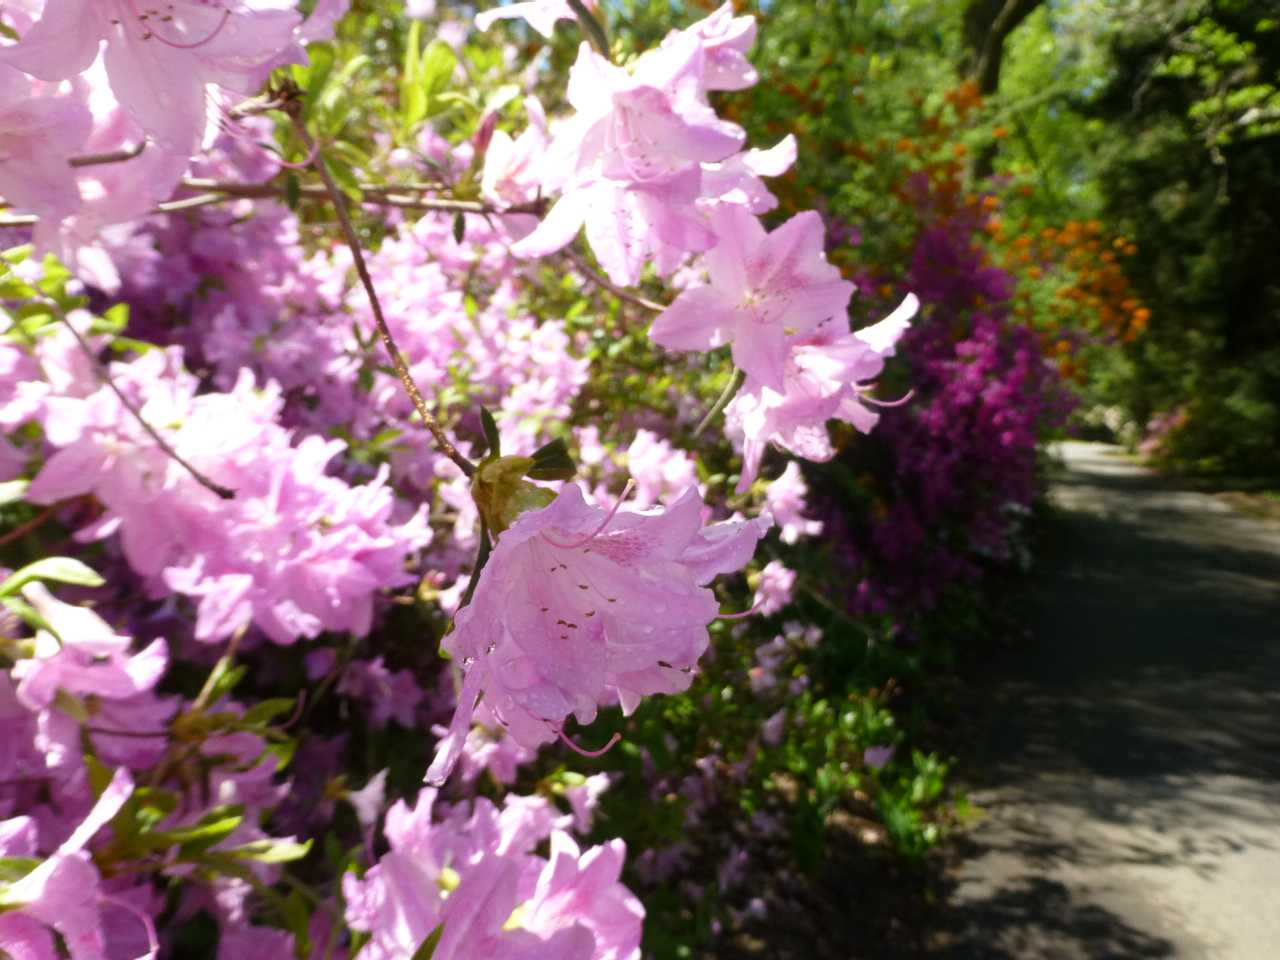 Close-up of pink clusters of flowers on a shrub along a path with other flowering shrubs